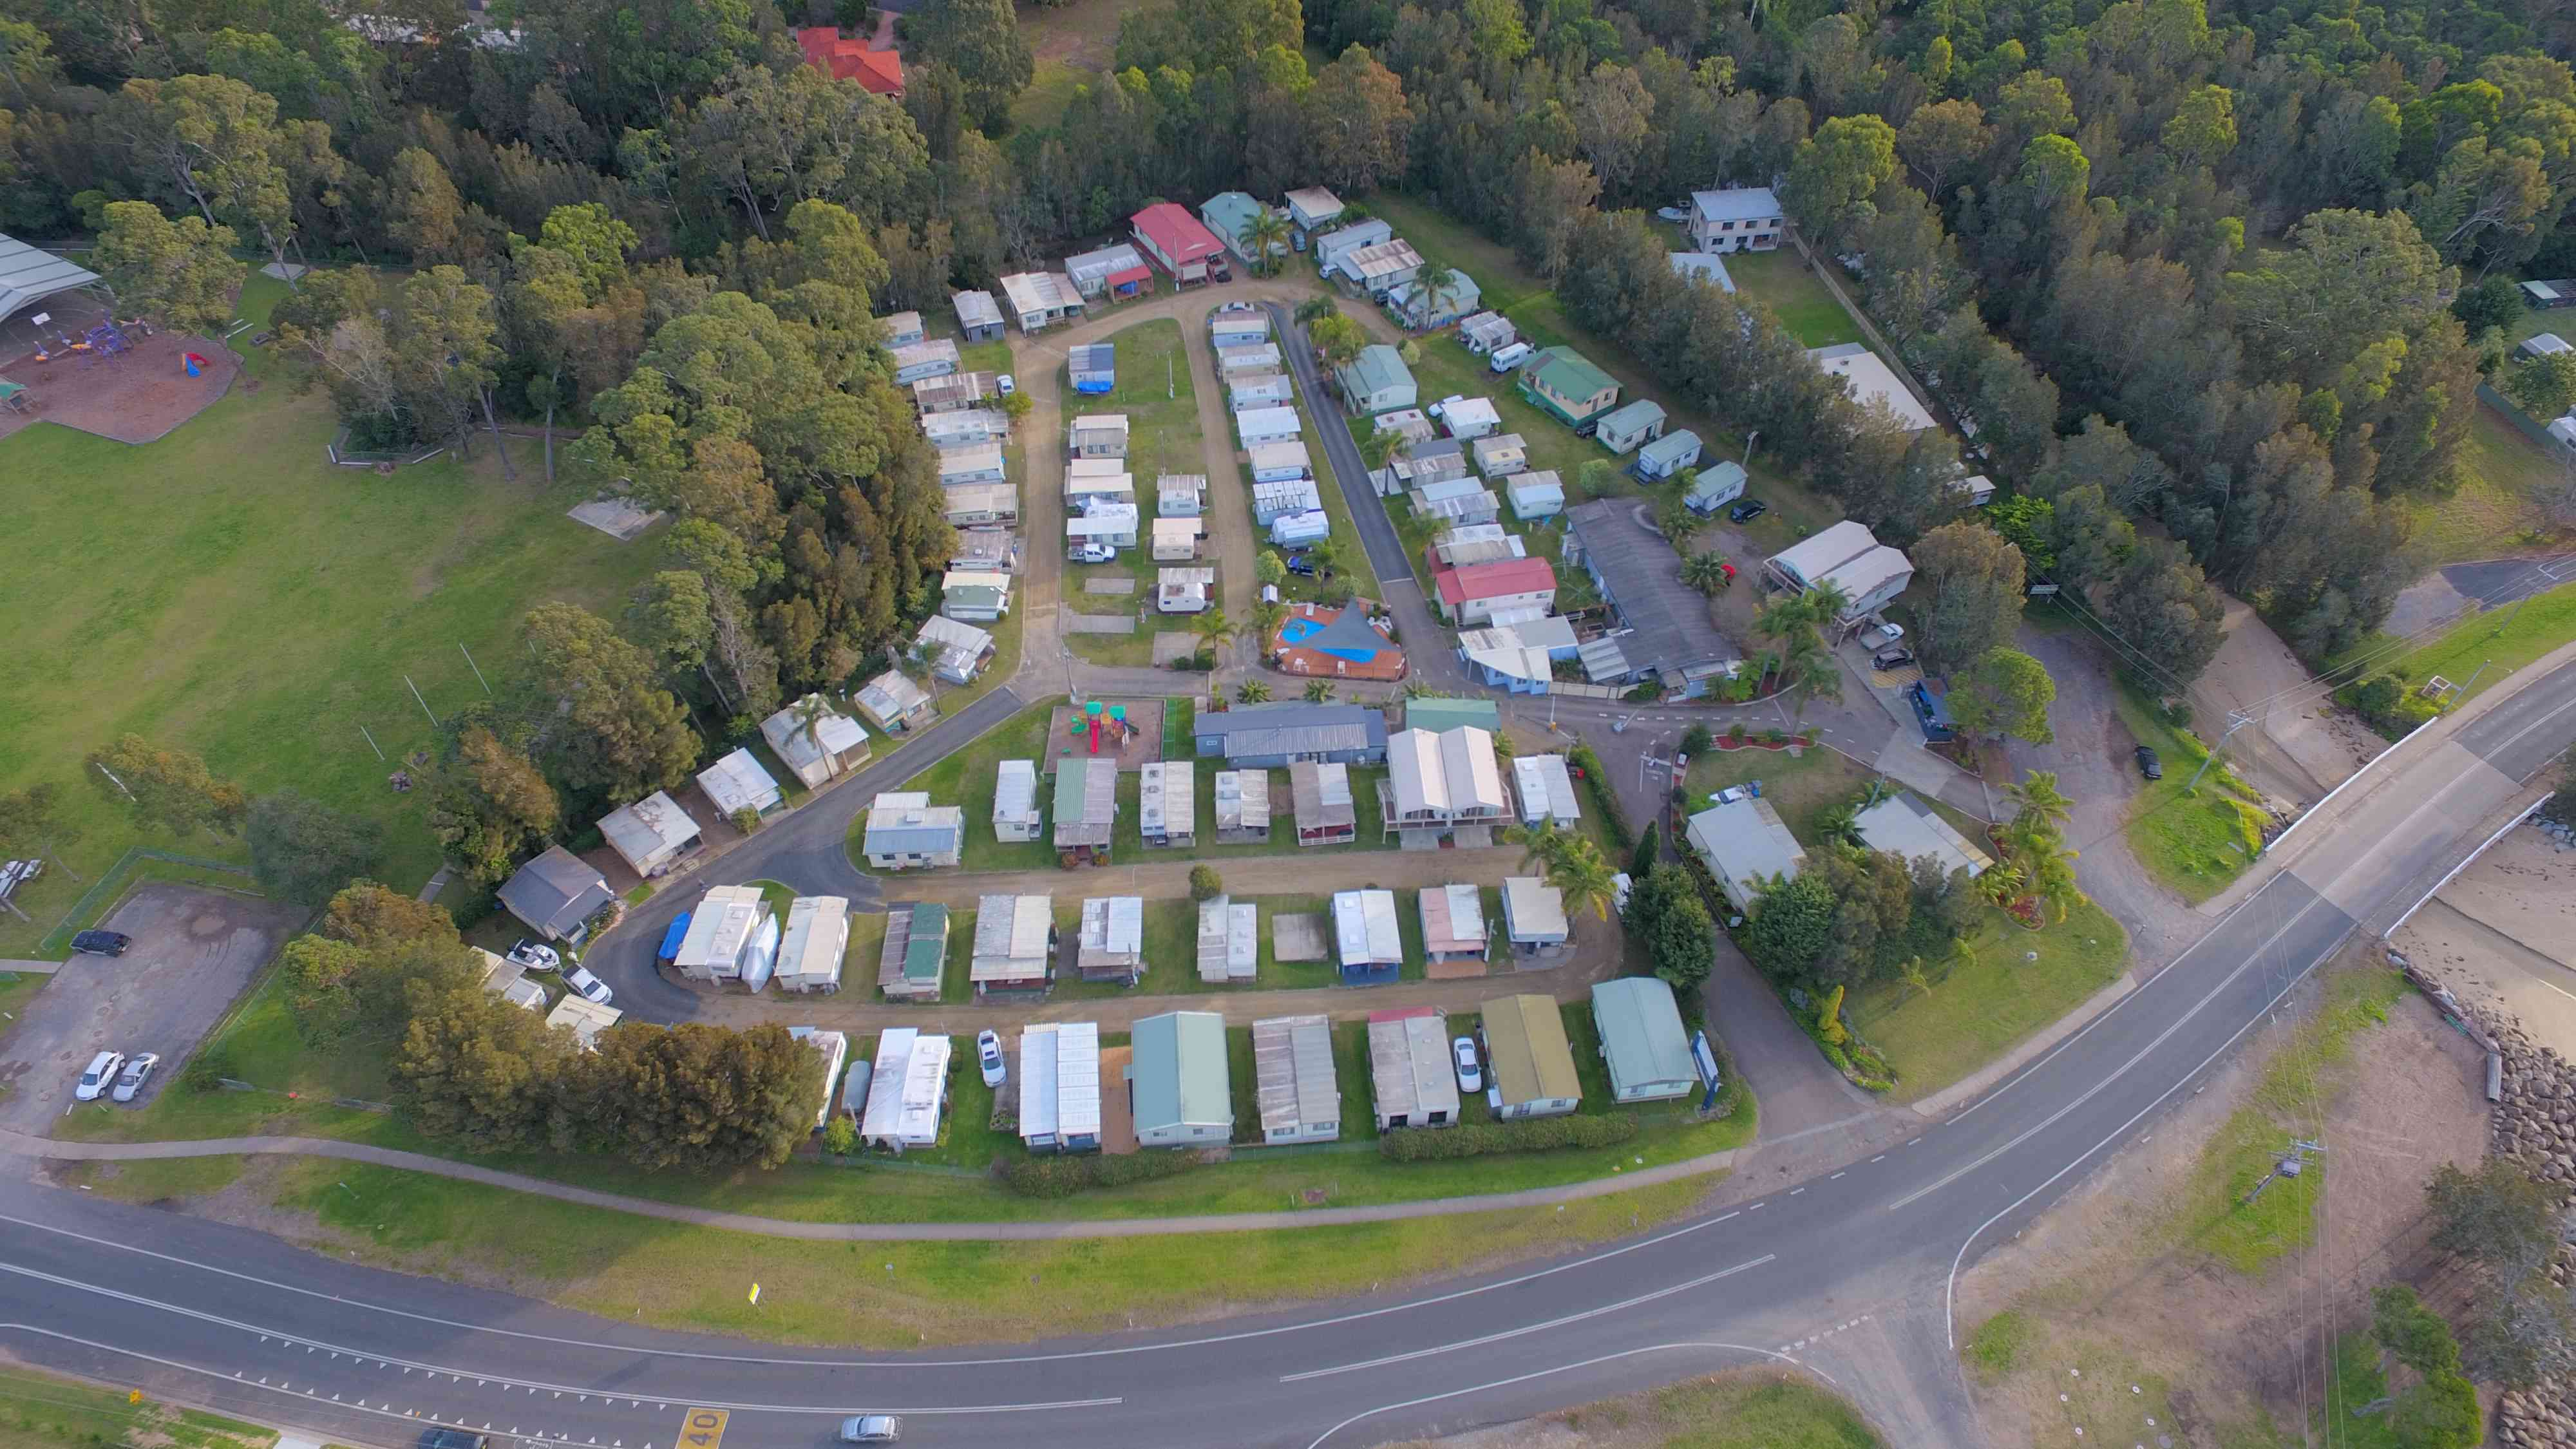 Vans and Cabins For Sale | Clyde View Holiday Park